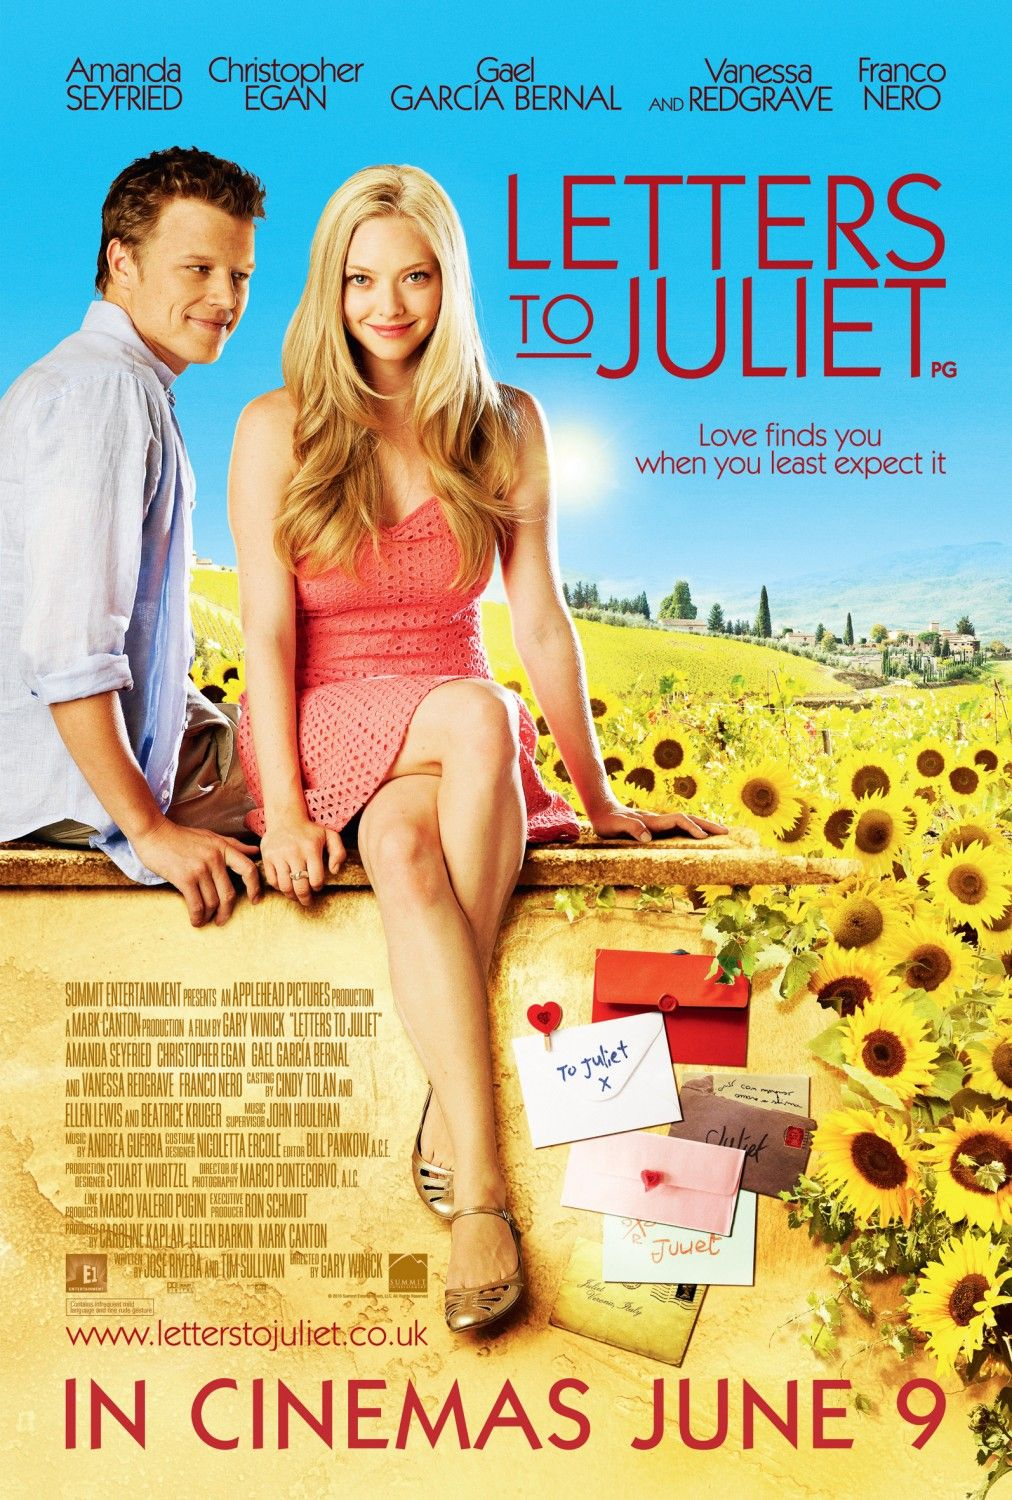 Return to the main poster page for Letters to Juliet (#2 of 3